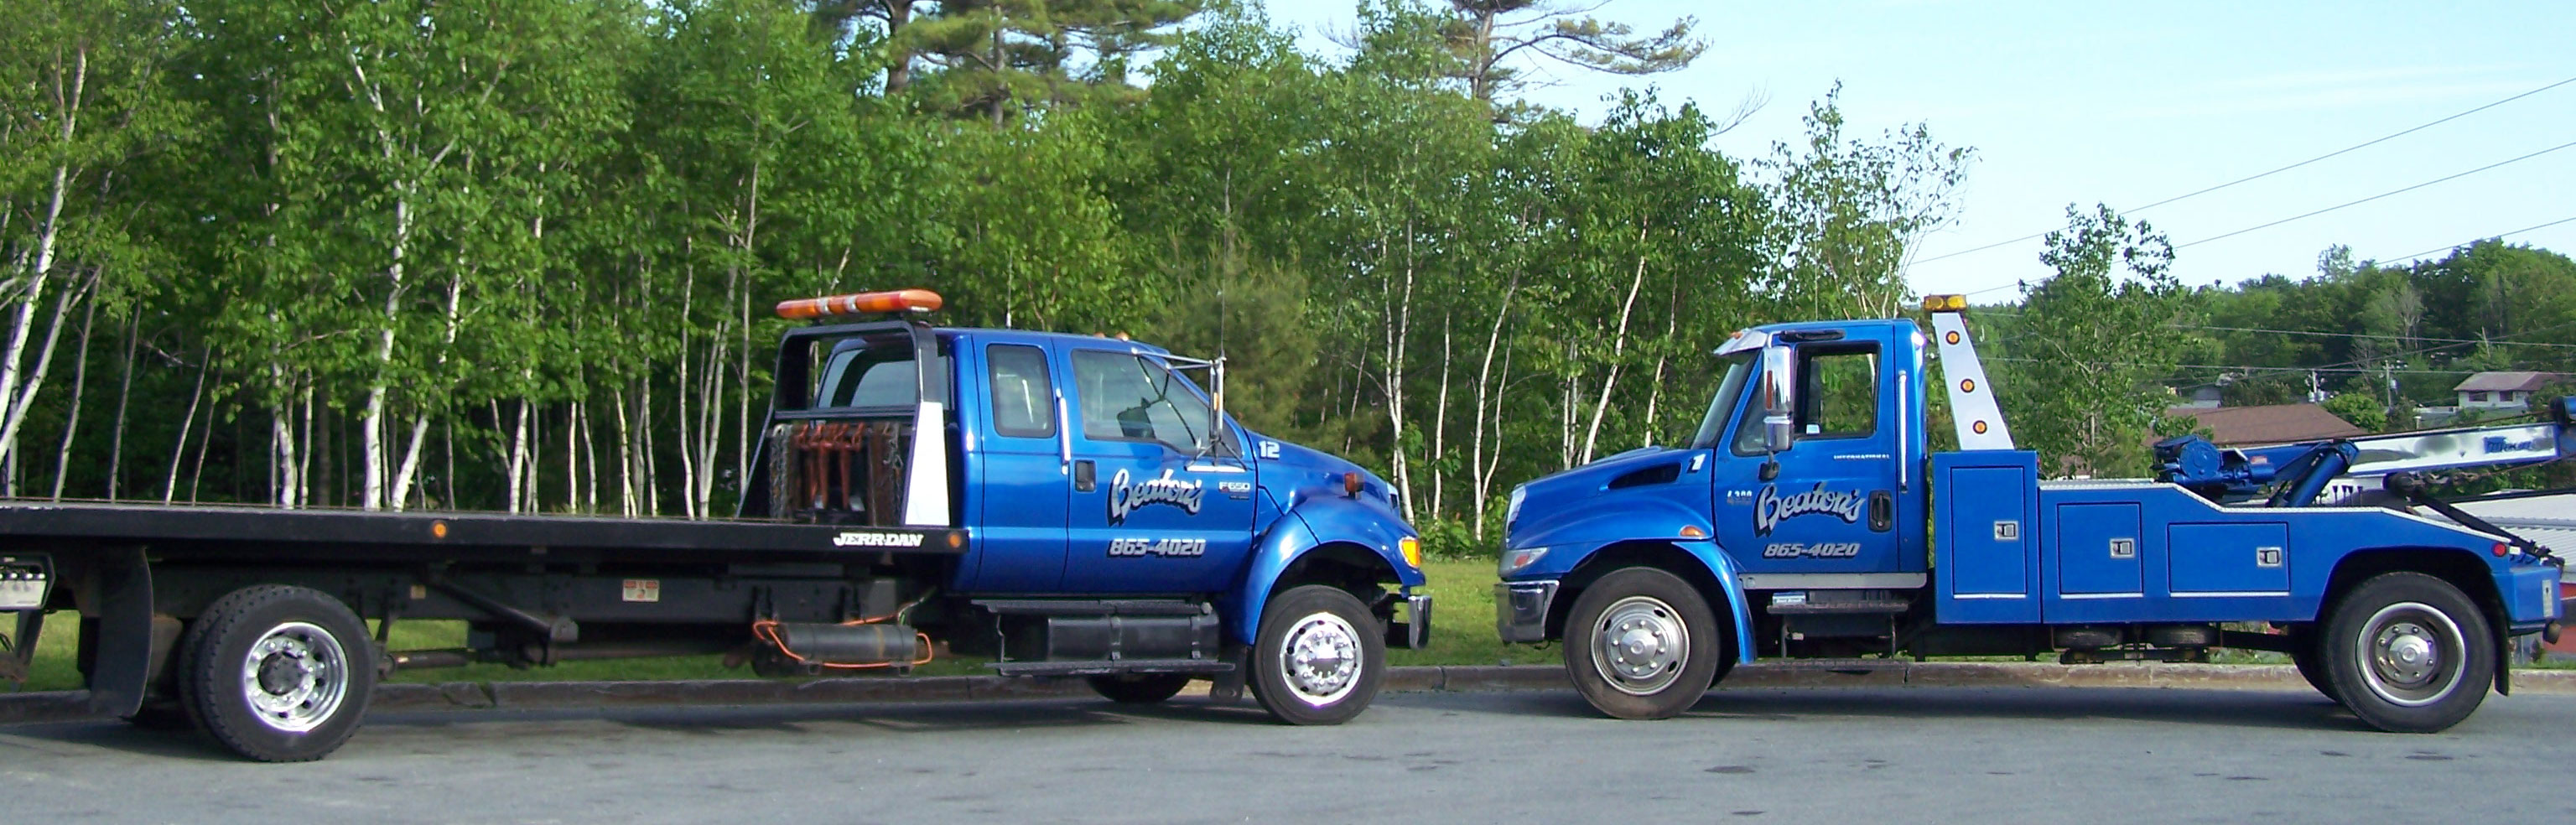 Towing trucks